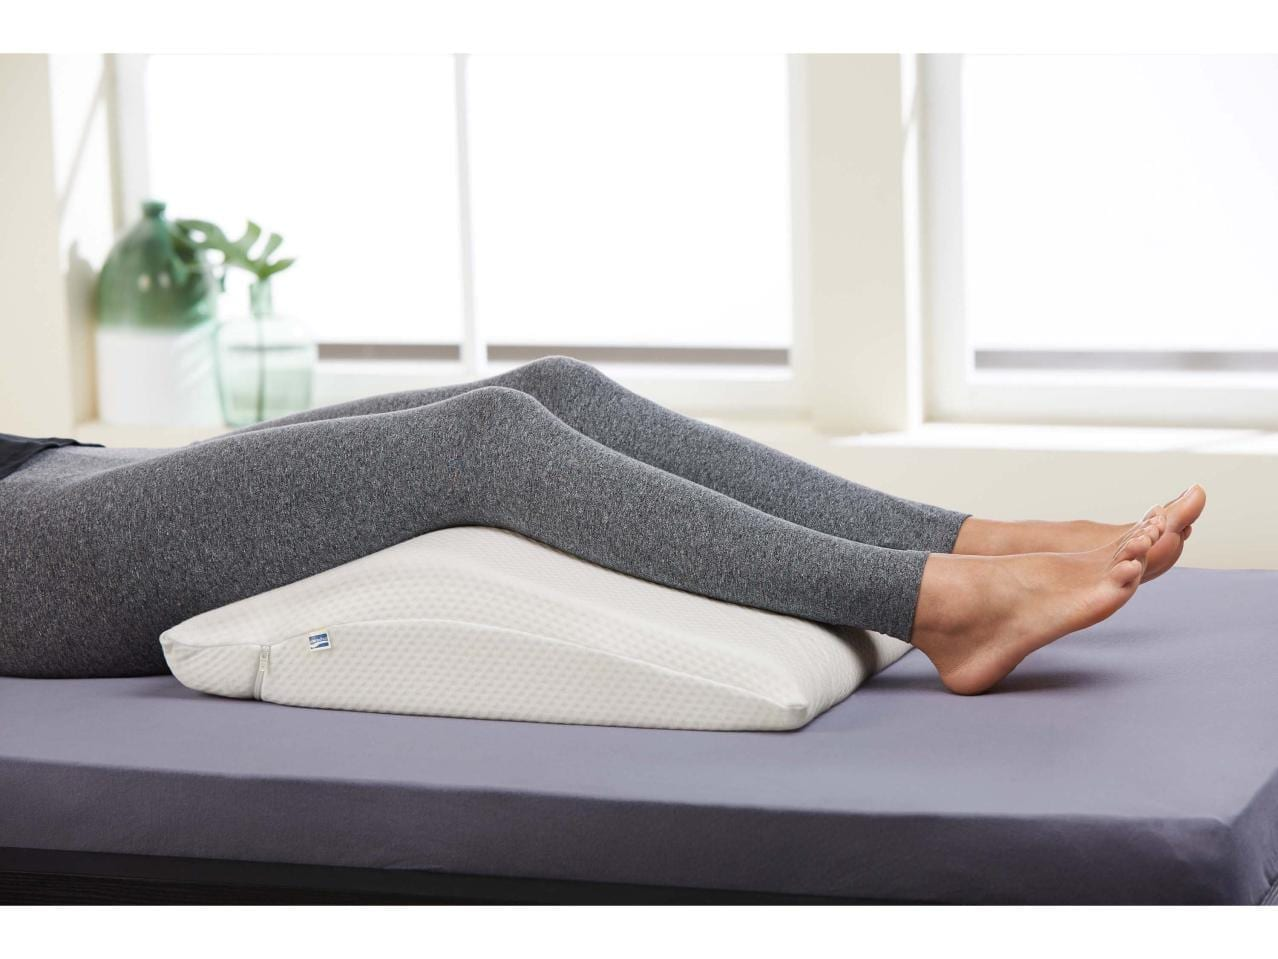 Leg Pillow Top Brands And Buying Guide For 2019